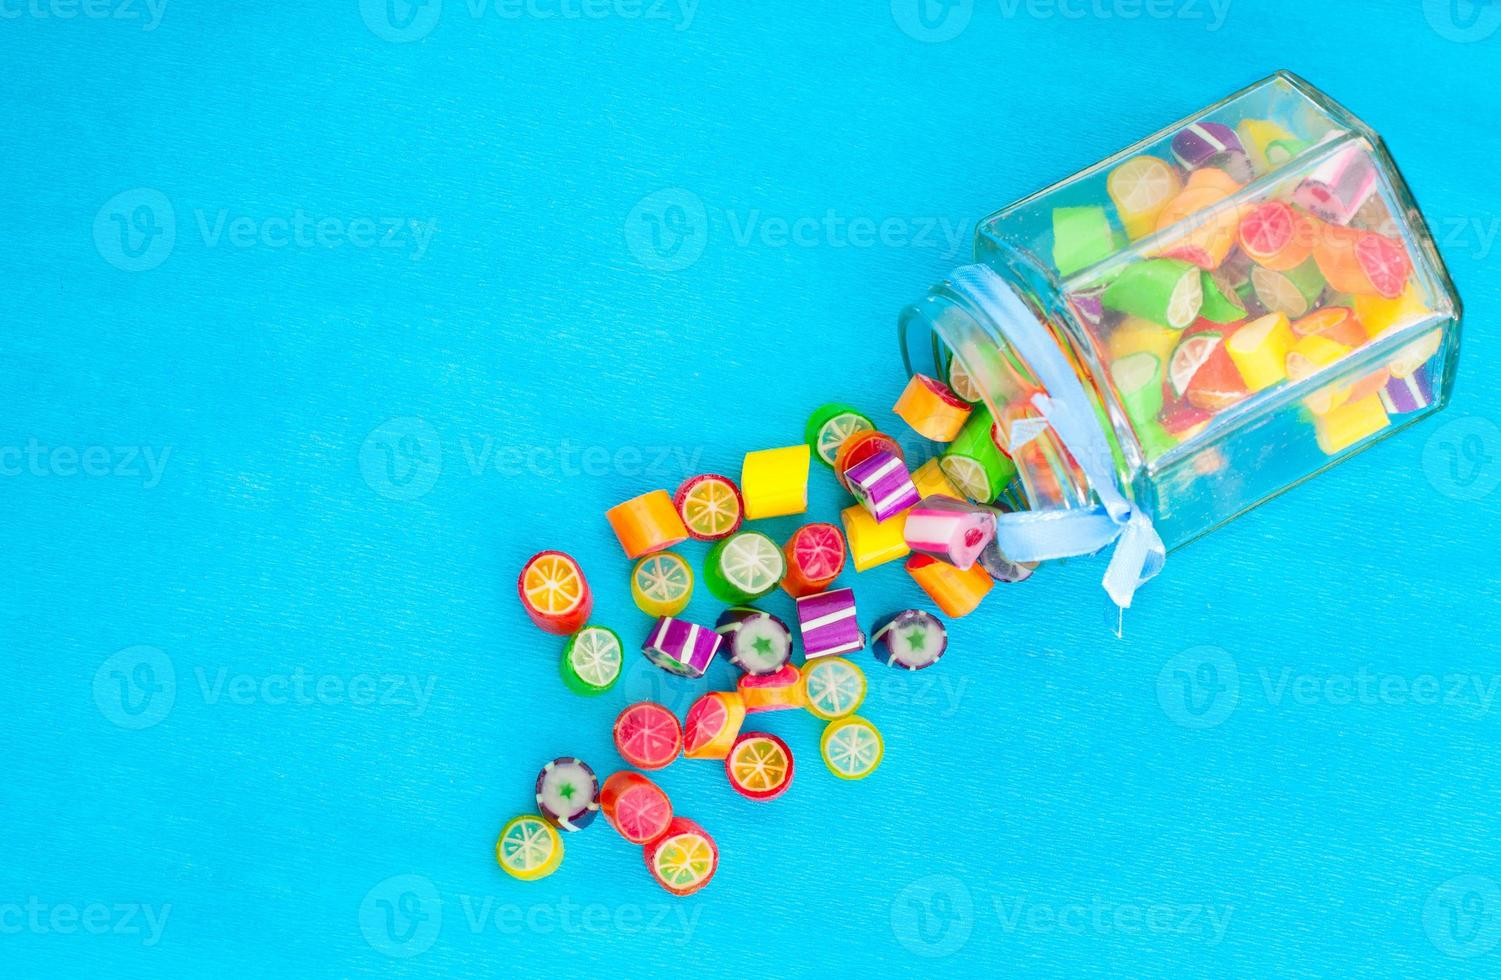 Colorful candies in jar on table on blue background photo